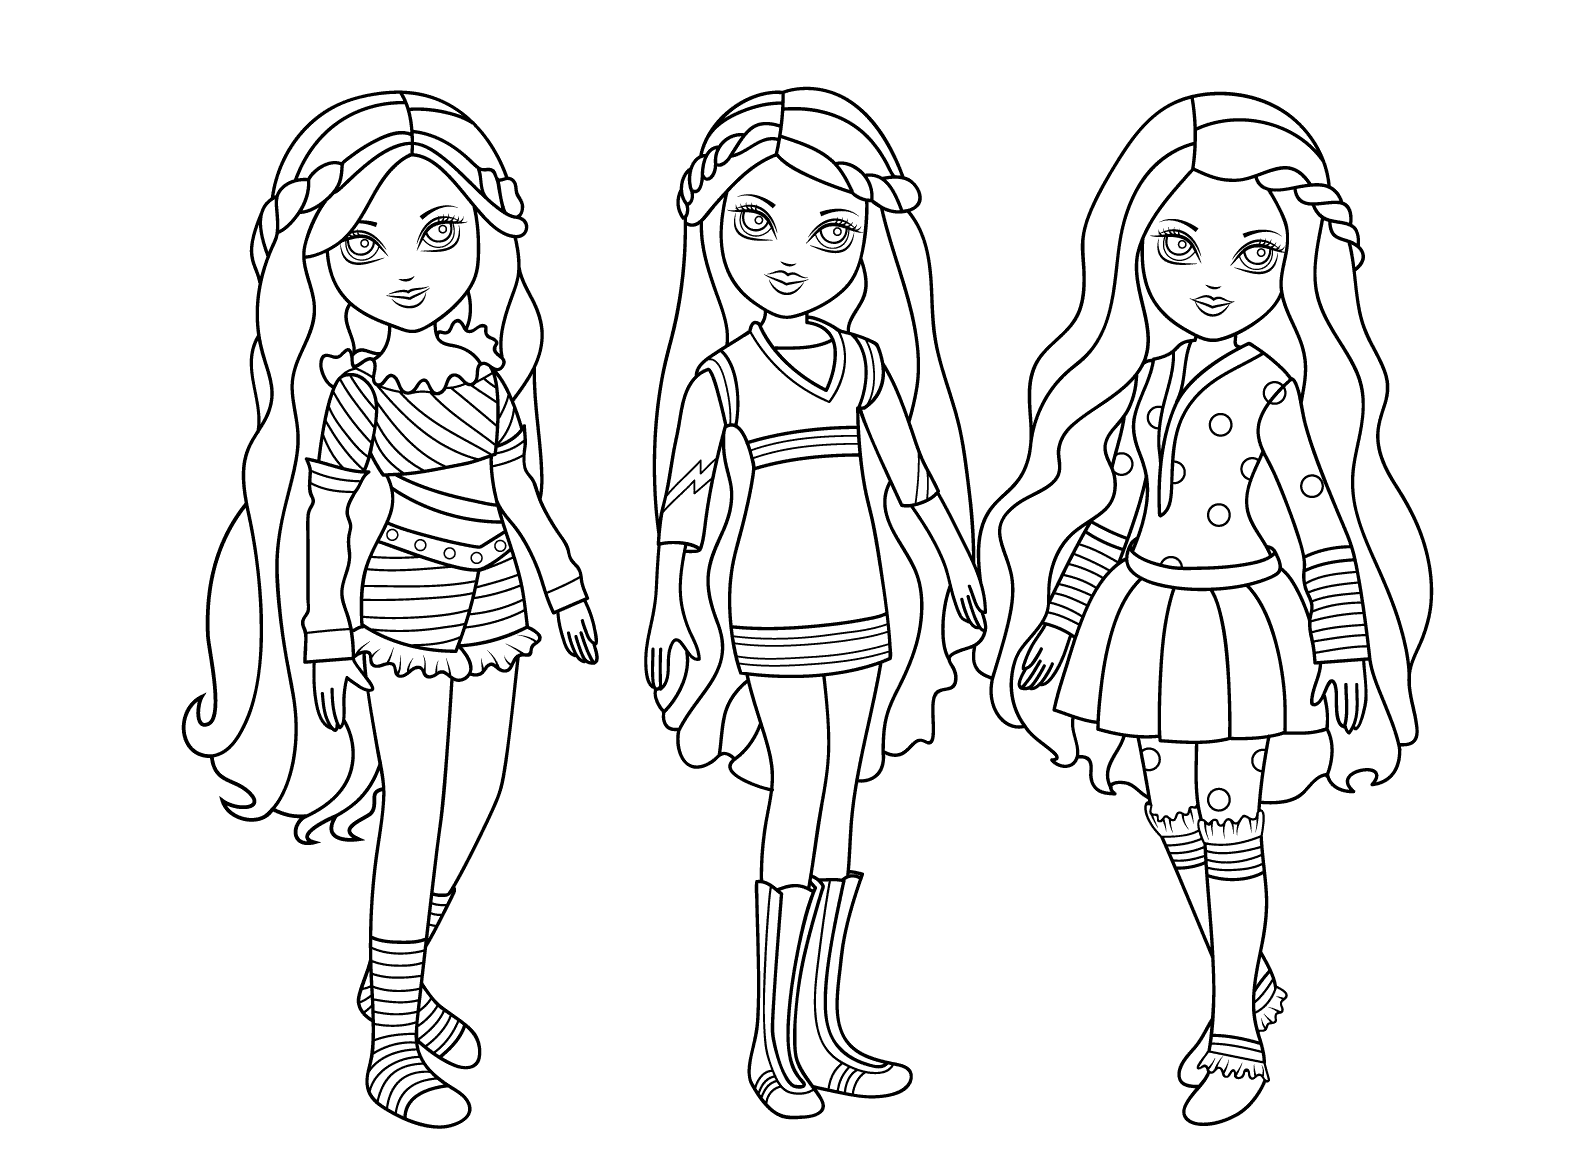 dolls colouring pages 40 free printable lol surprise dolls coloring pages dolls pages colouring